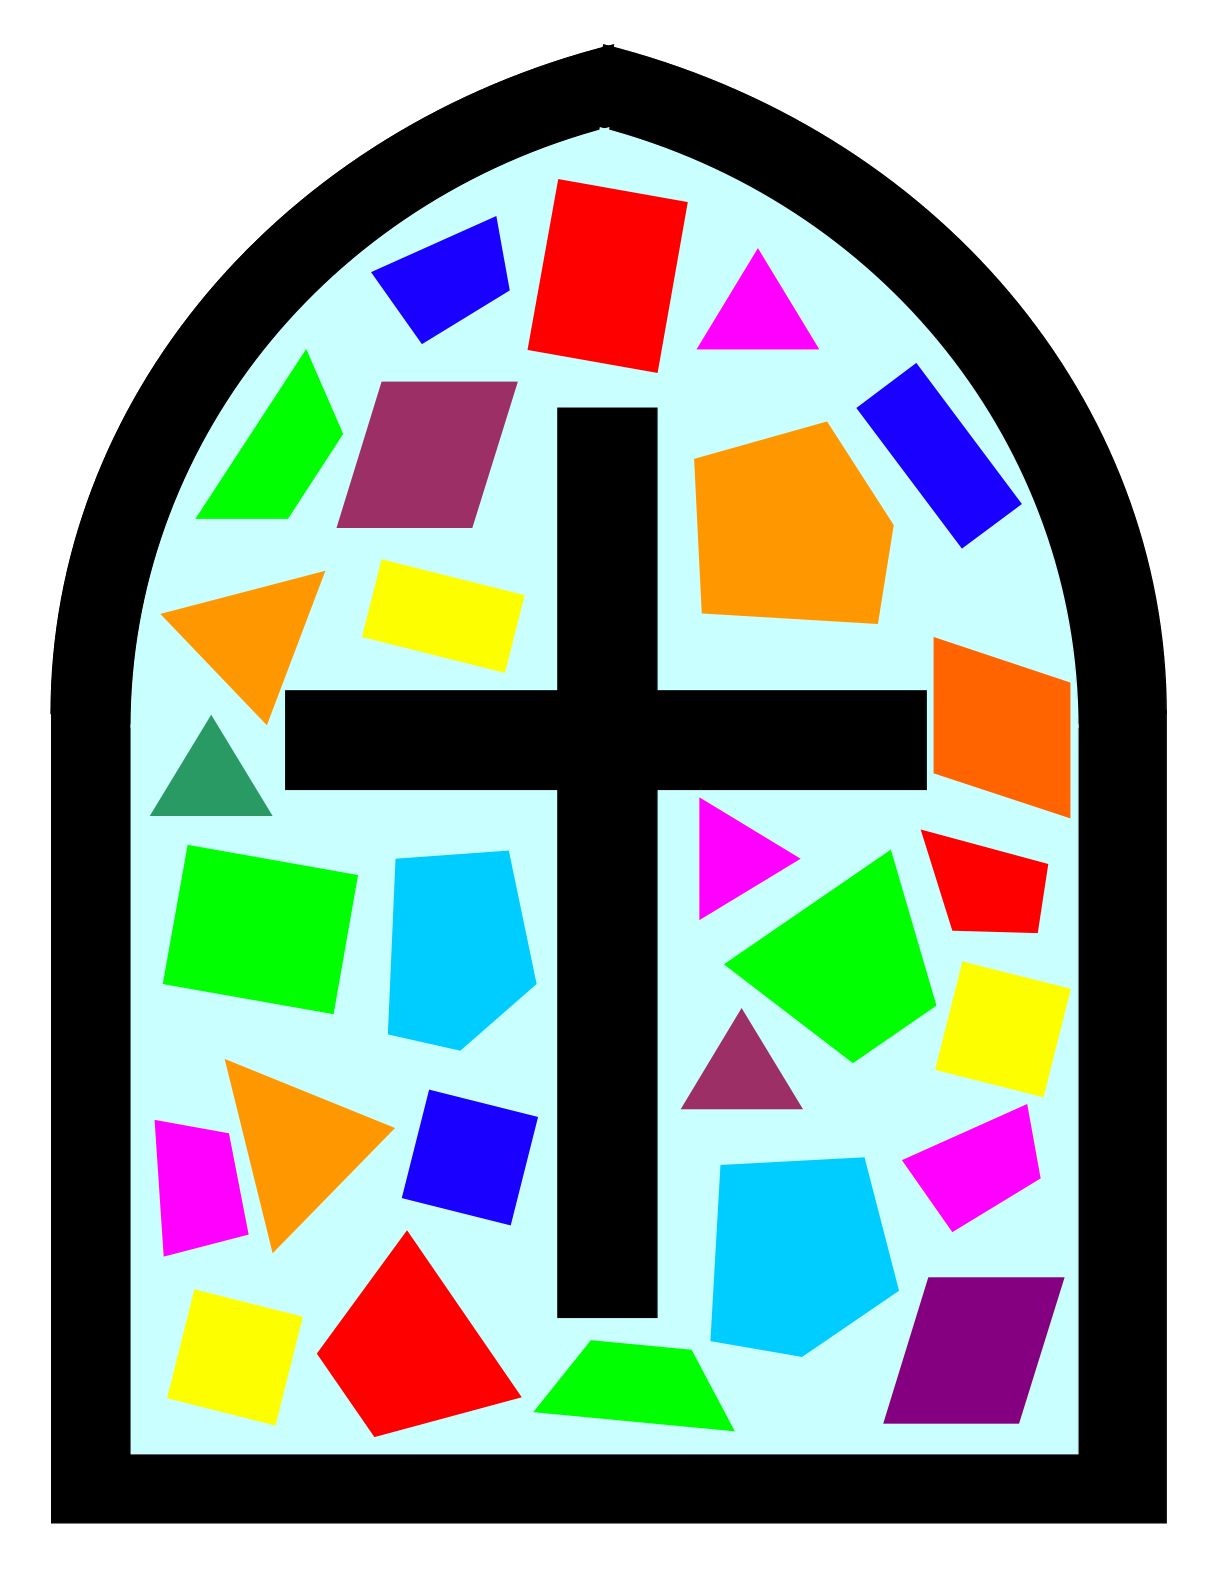 Stained Glass clipart #6, Download drawings